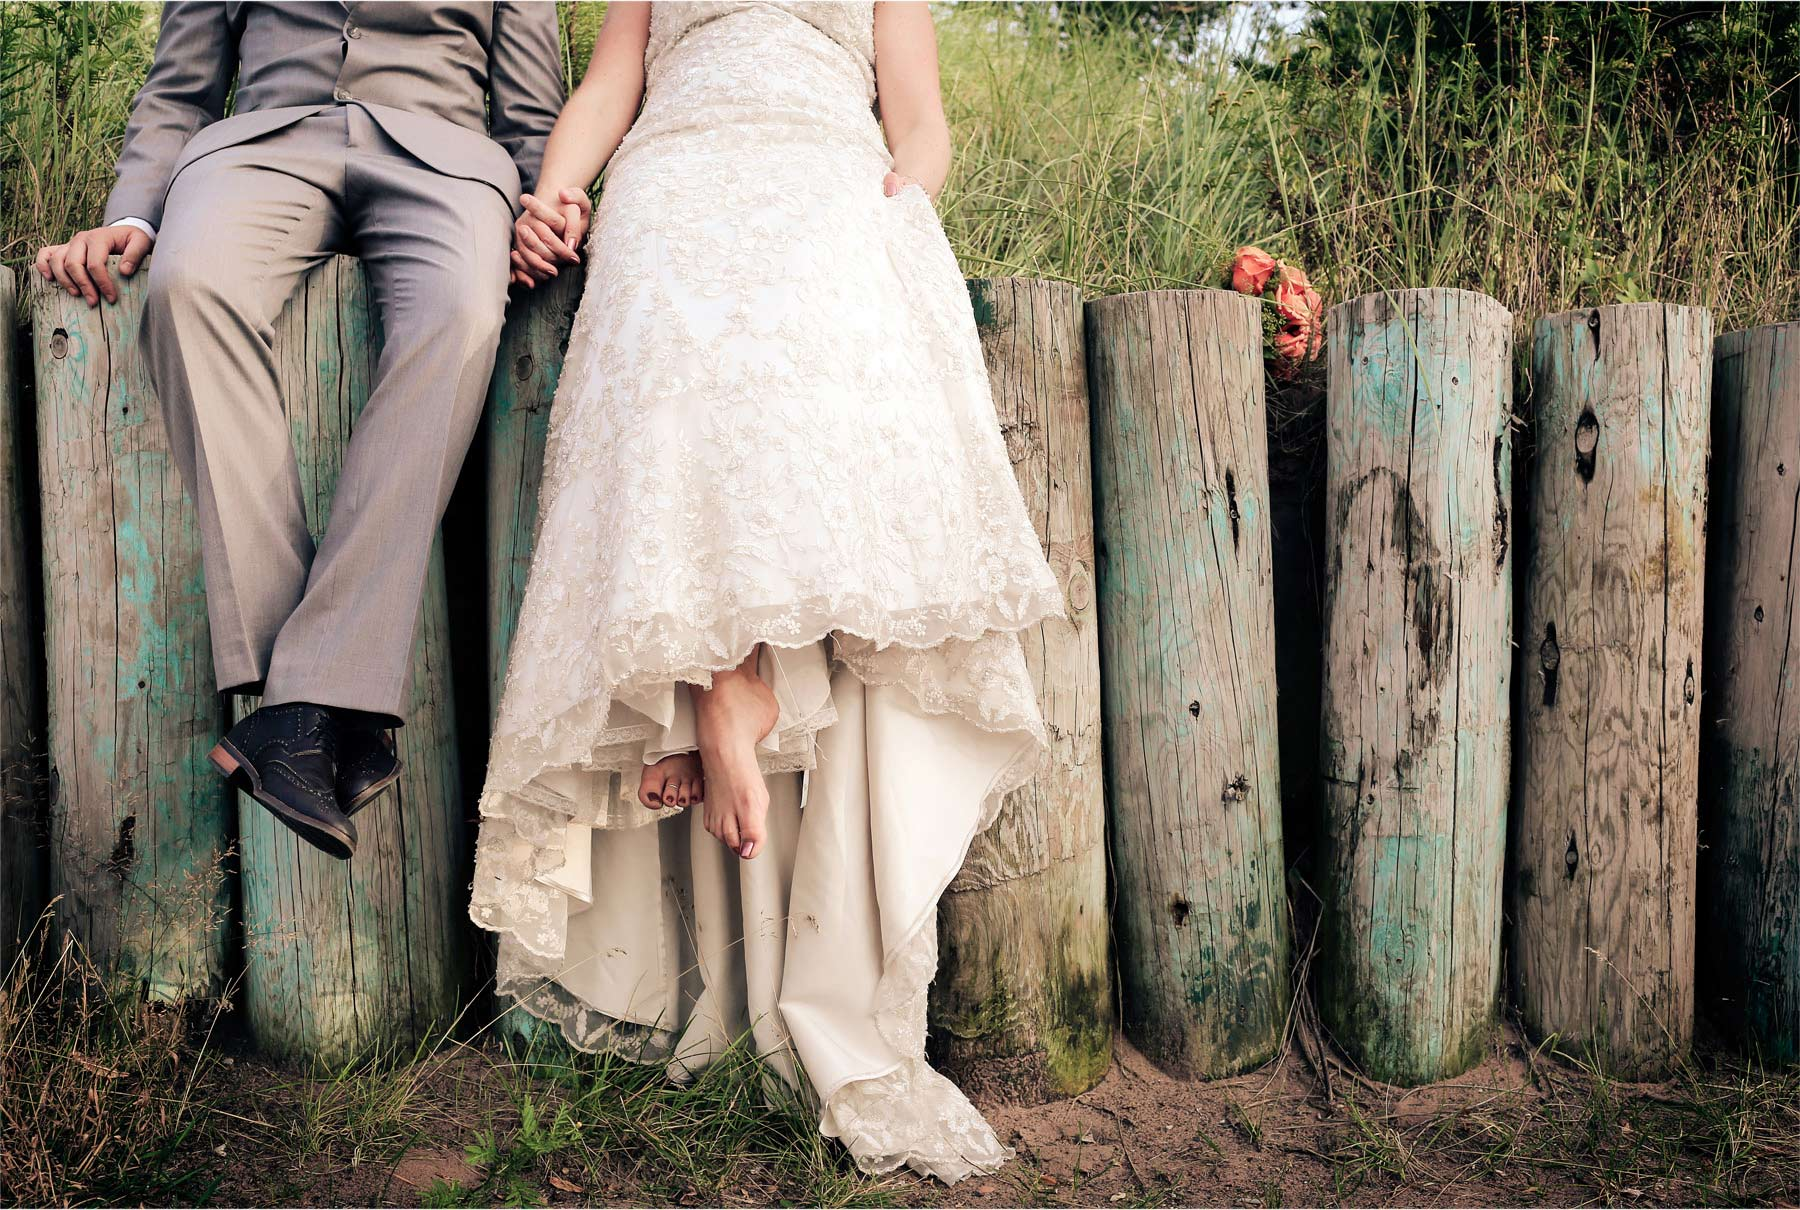 17-Duluth-Minnesota-Wedding-Photographer-by-Andrew-Vick-Photography-Summer-Bride-Groom-Holding-Hands-Sitting-Feet-Vintage-Katie-and-Andrew.jpg